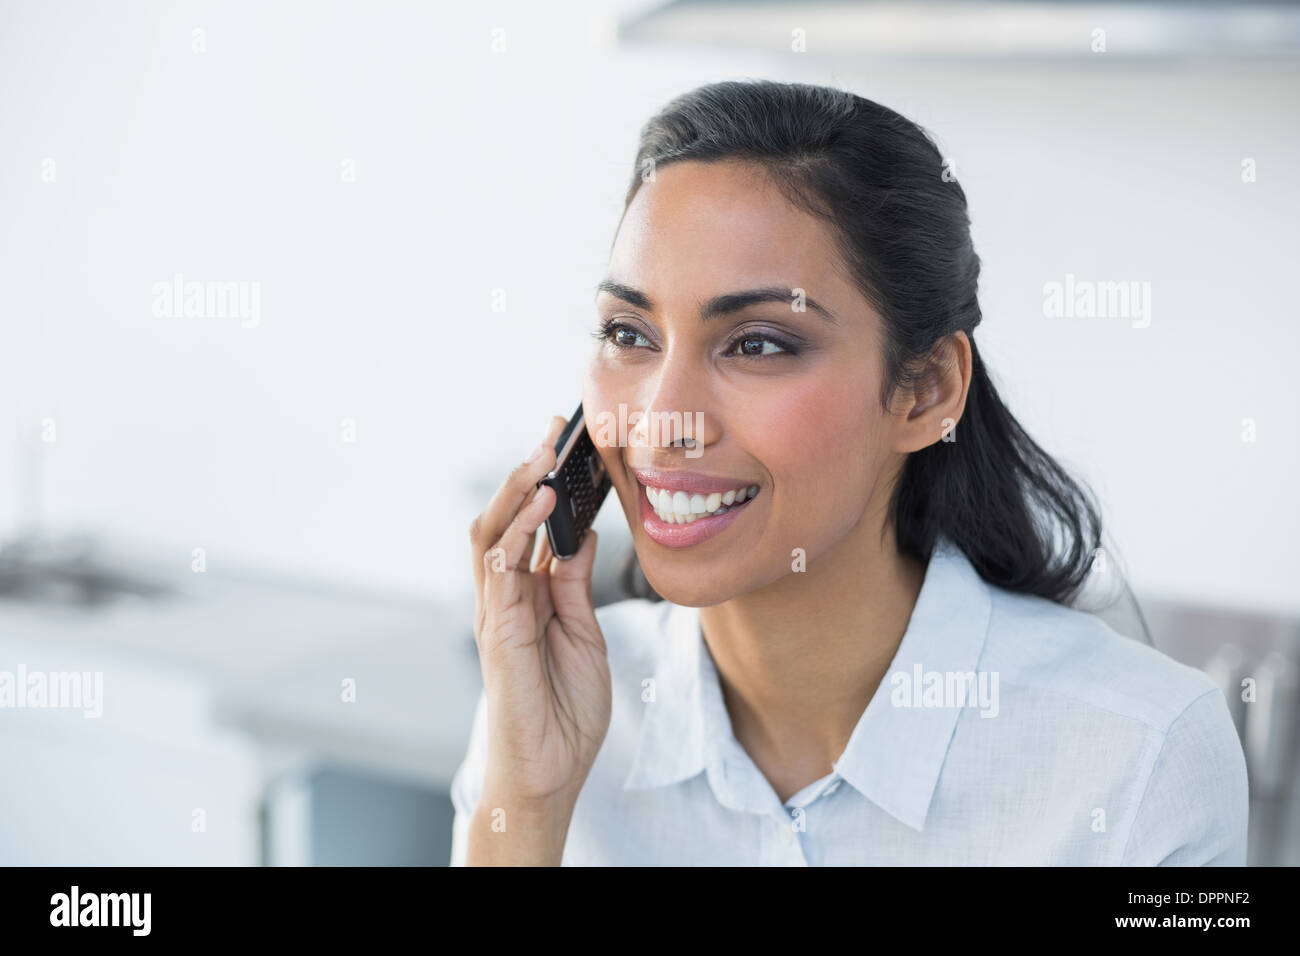 Gleeful young woman phoning with her smartphone - Stock Image